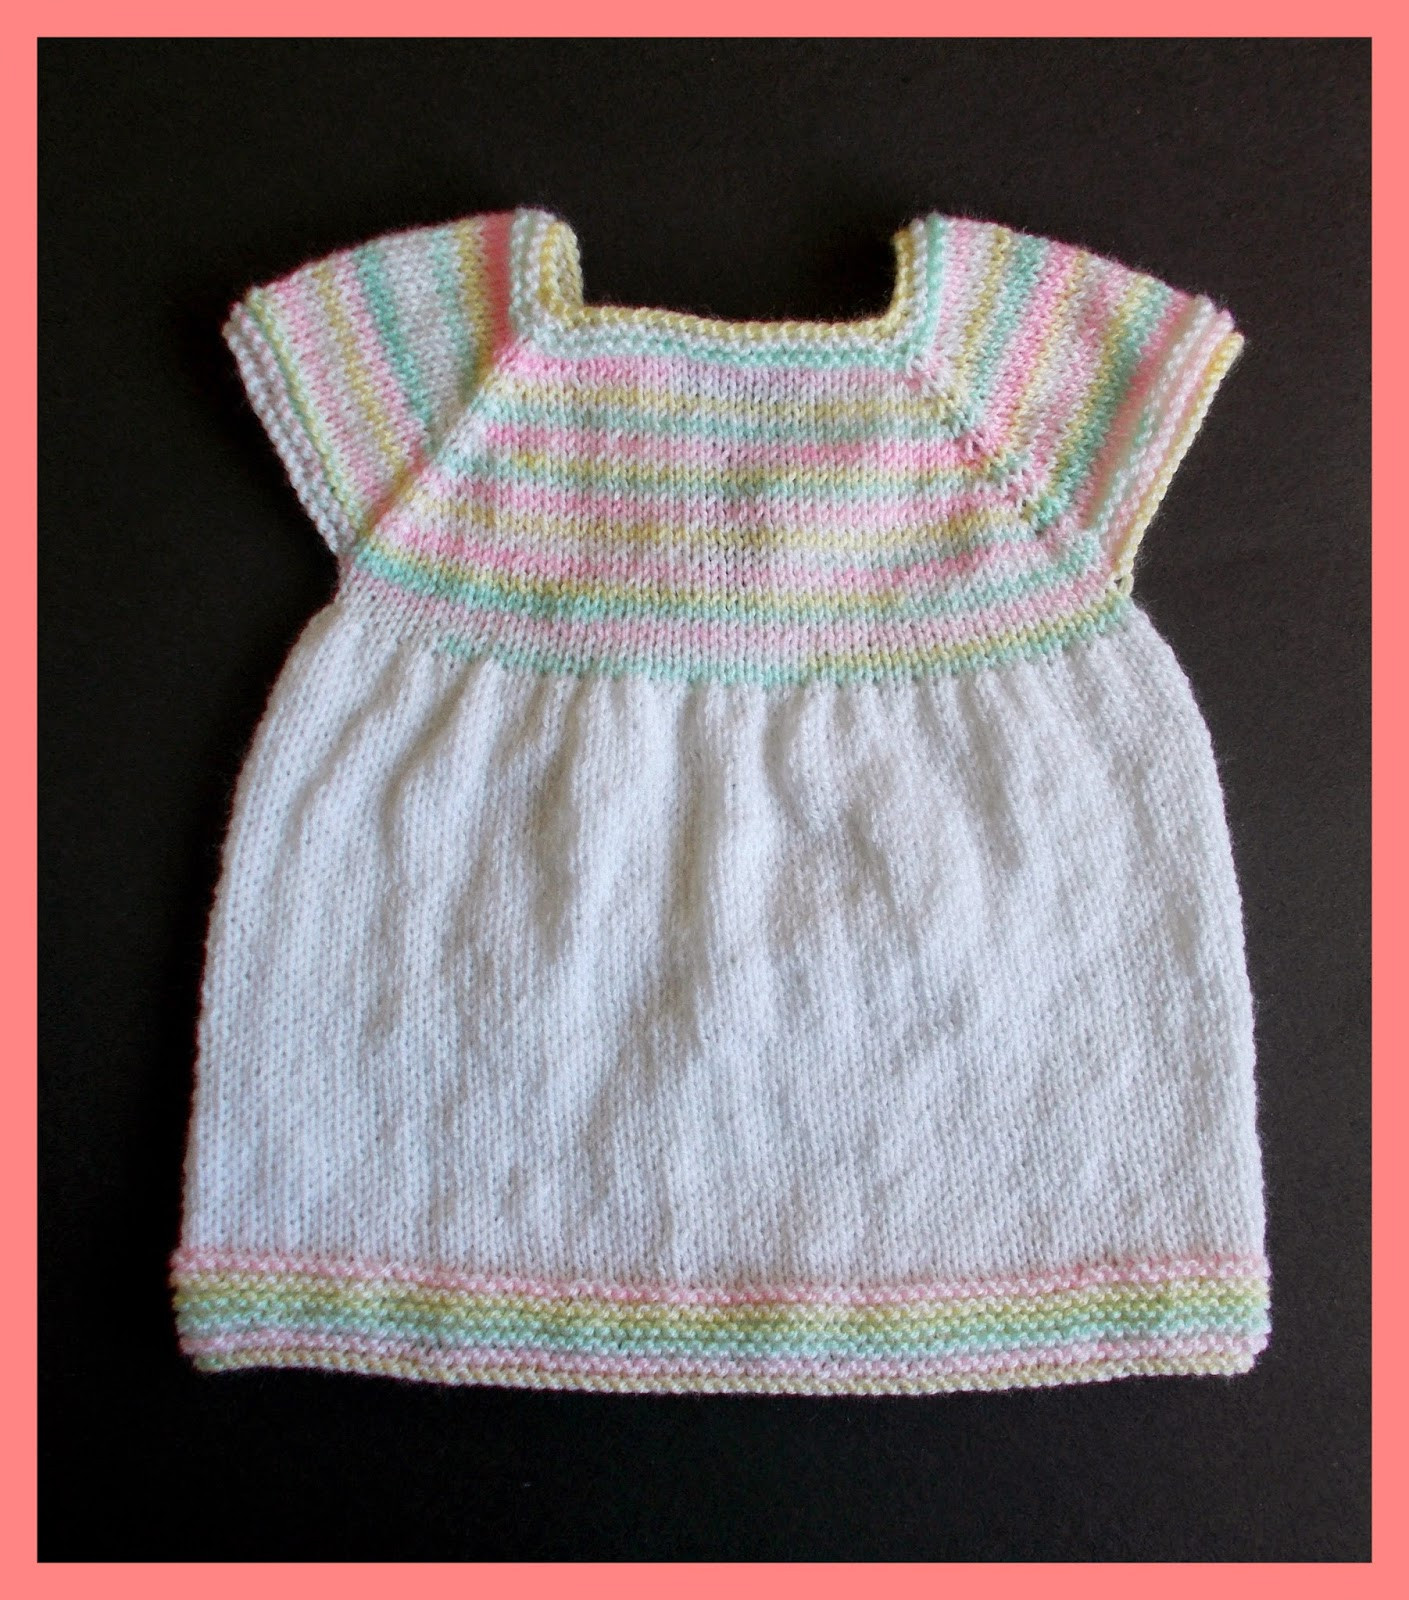 Baby Clothes Patterns Fresh Marianna S Lazy Daisy Days Starting Out Knitted Baby Dress Of Wonderful 46 Pictures Baby Clothes Patterns